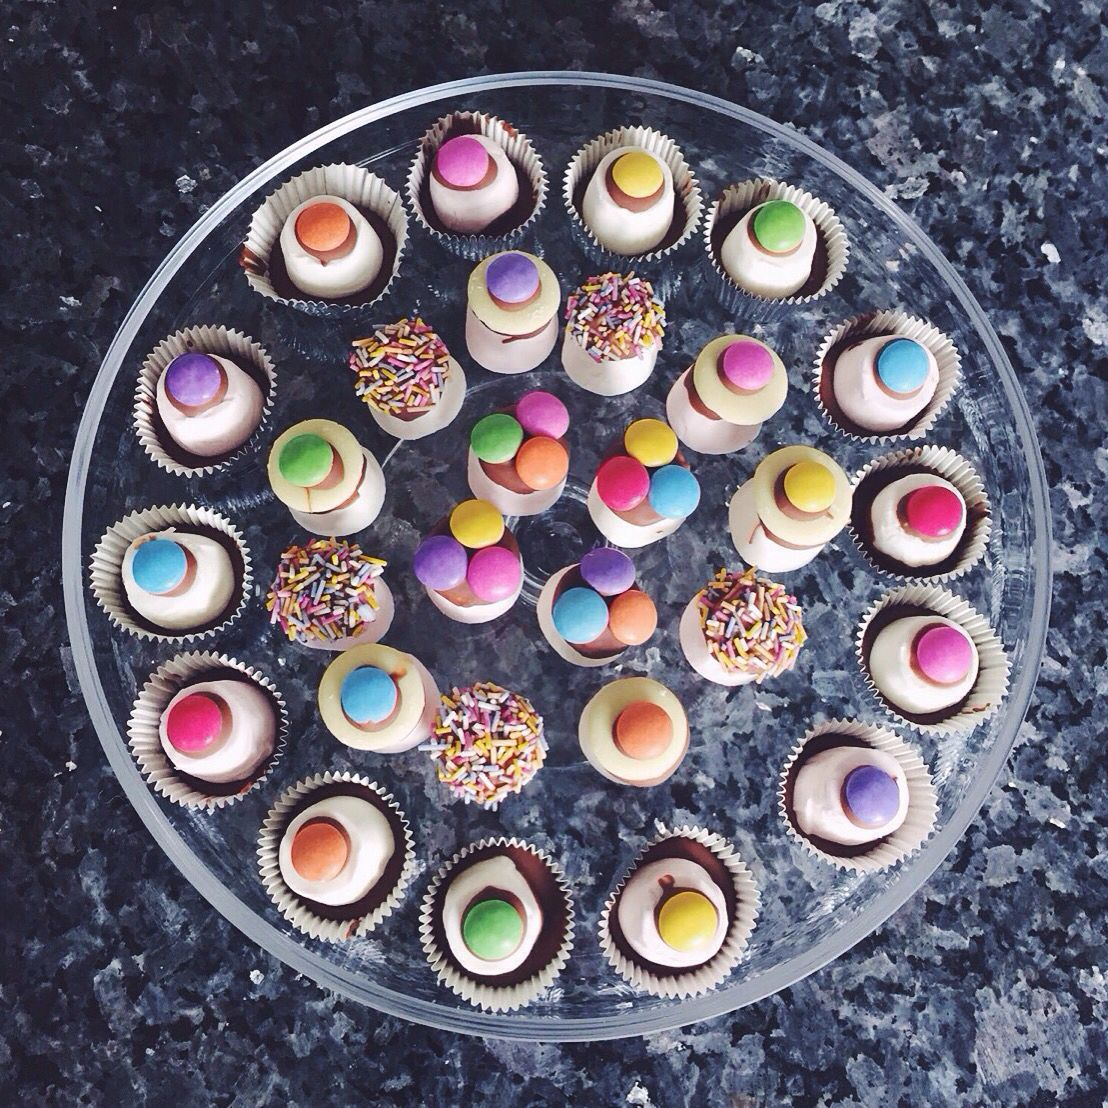 Top Hats Marshmallows Chocolate Smarties Party Food Treats Small Kids Easy Birthday Bbq Chocolate Topping Kid Friendly Meals